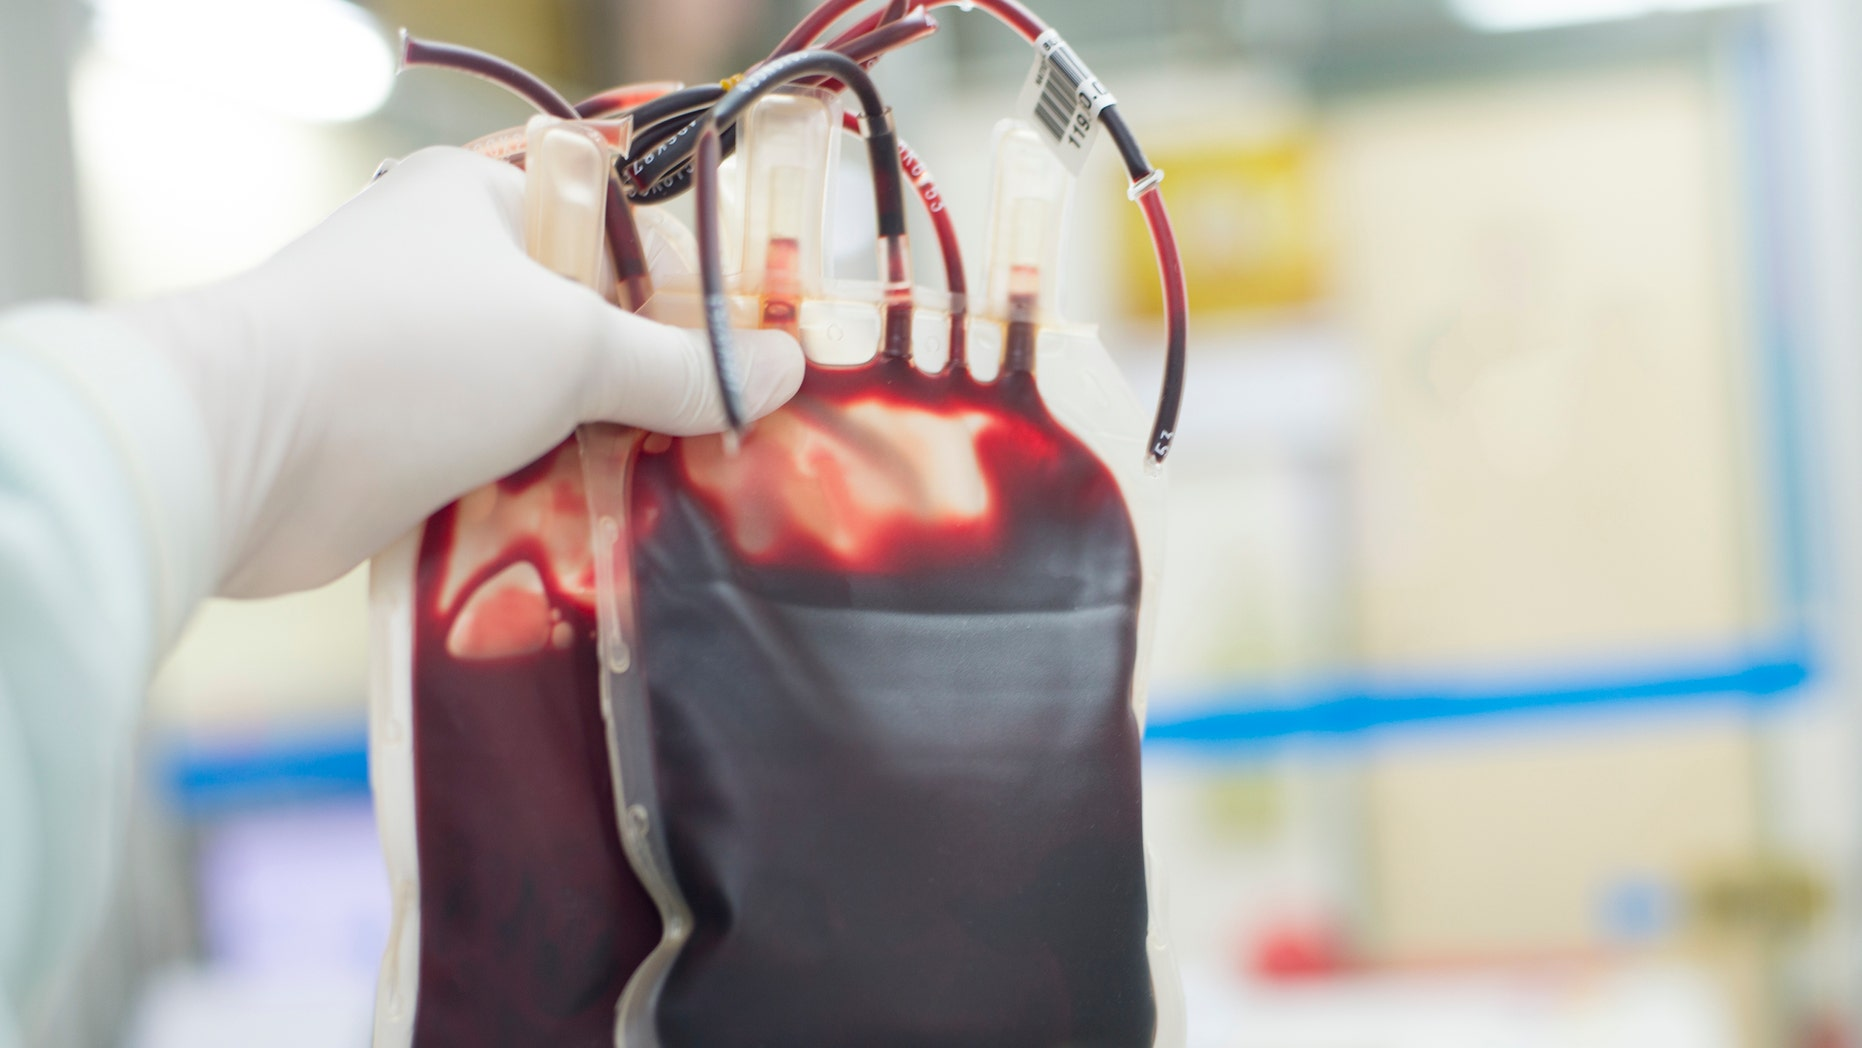 Stay Away From Trendy Unproven 'Young Blood Transfusions,' FDA Warns Consumers